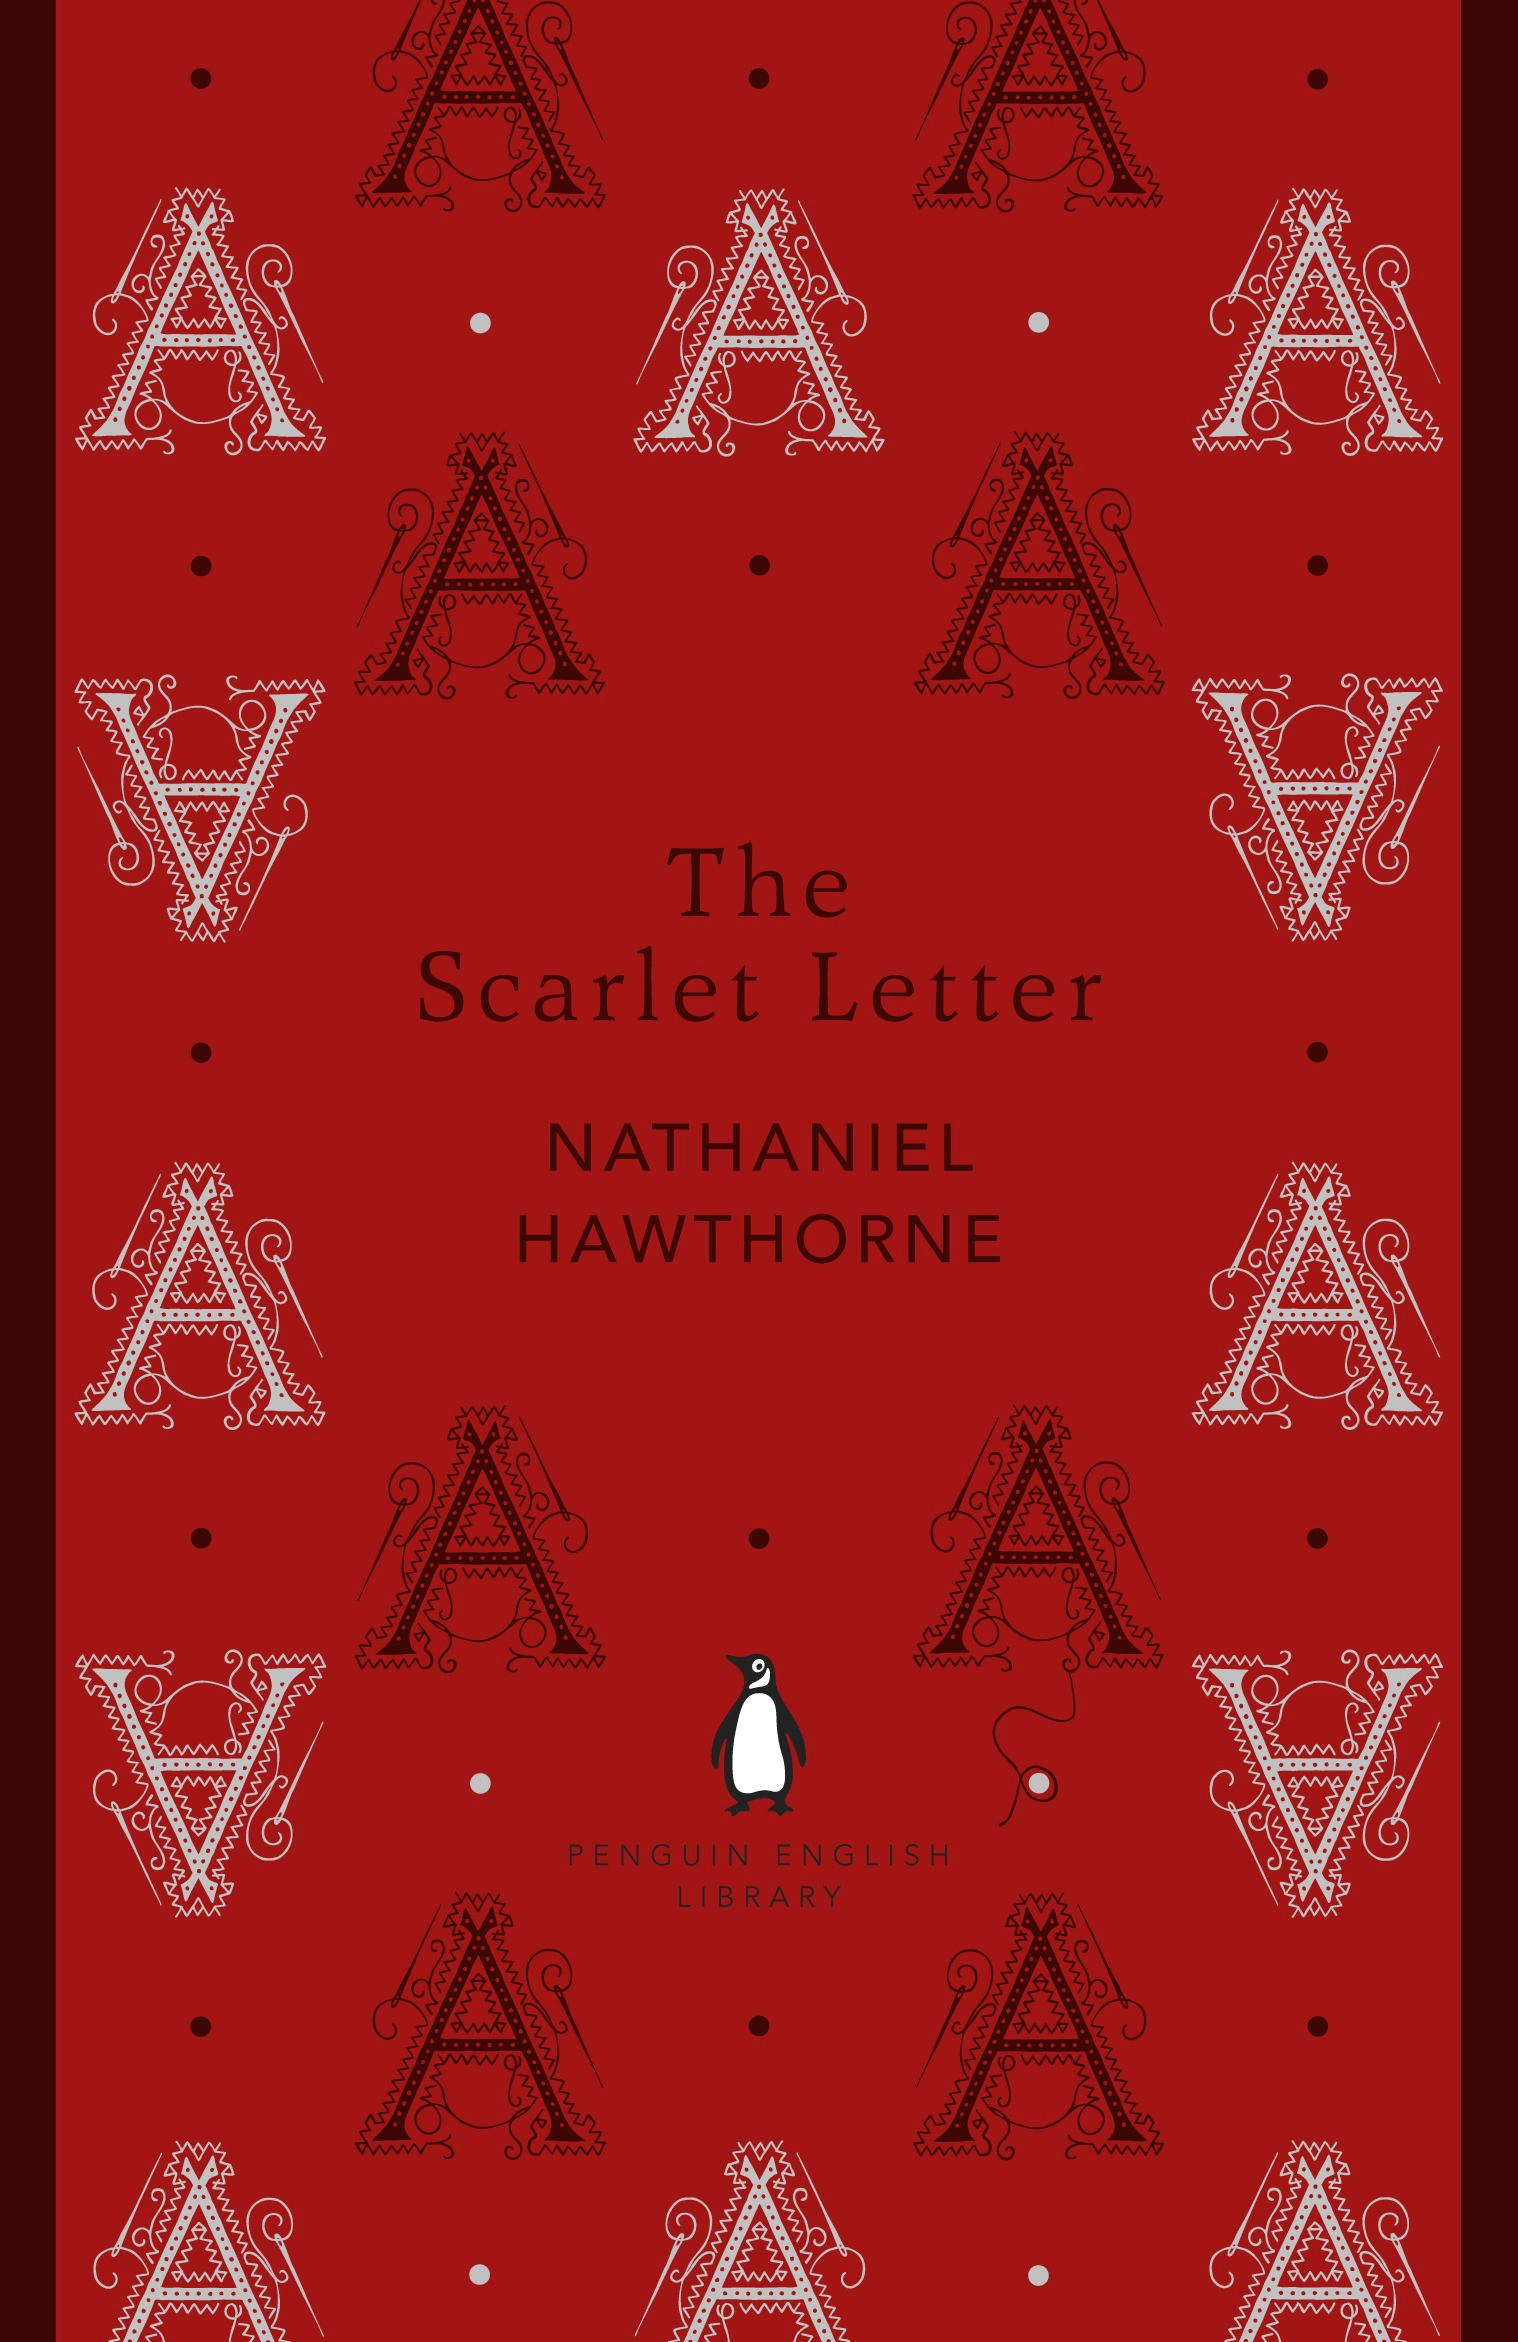 The scarlet letter book cover image collections cover letter sample scarlet letter book cover image collections cover letter sample how many classics have you read playbuzz madrichimfo Gallery